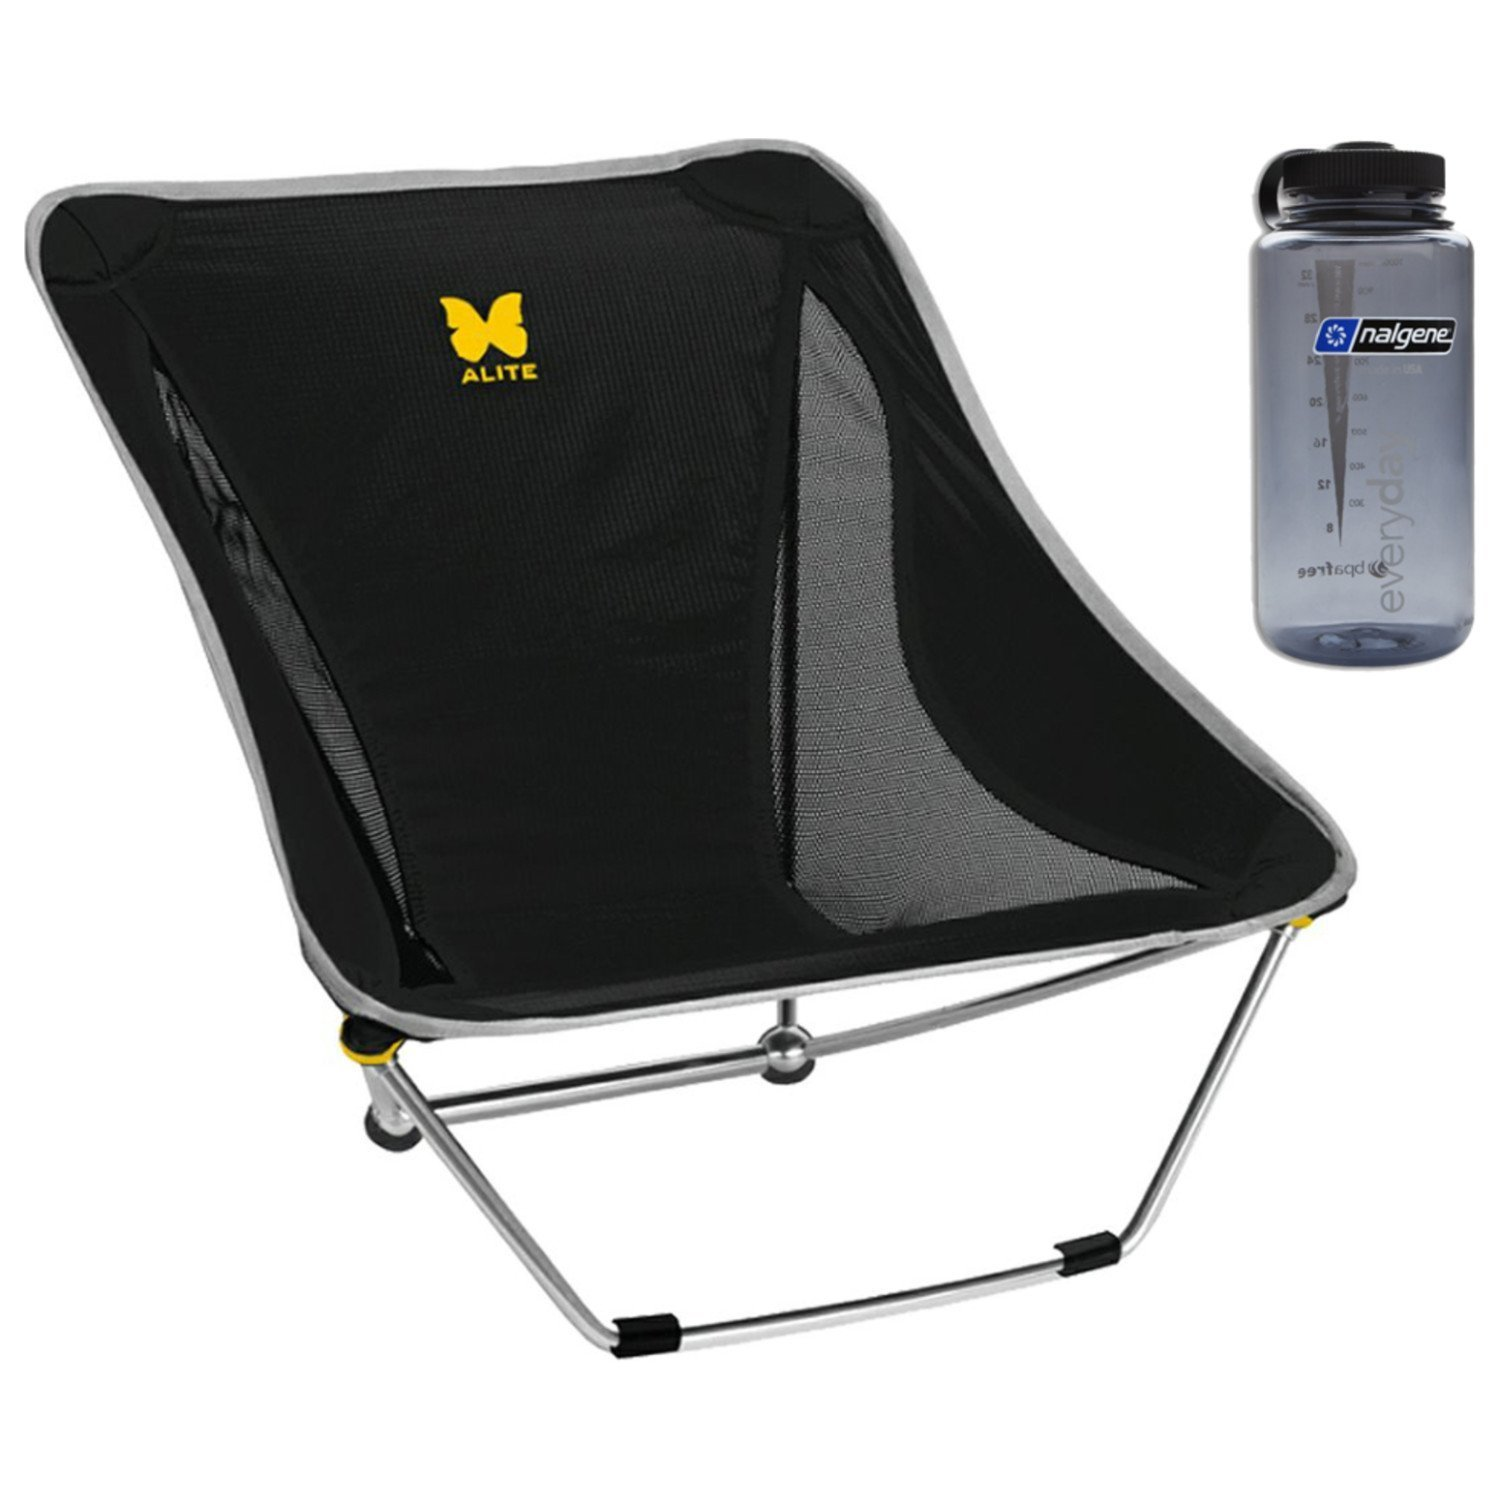 Alite Mayfly Chair - (Black) with Free 32oz Nalgene Water Bottle by Alite Designs